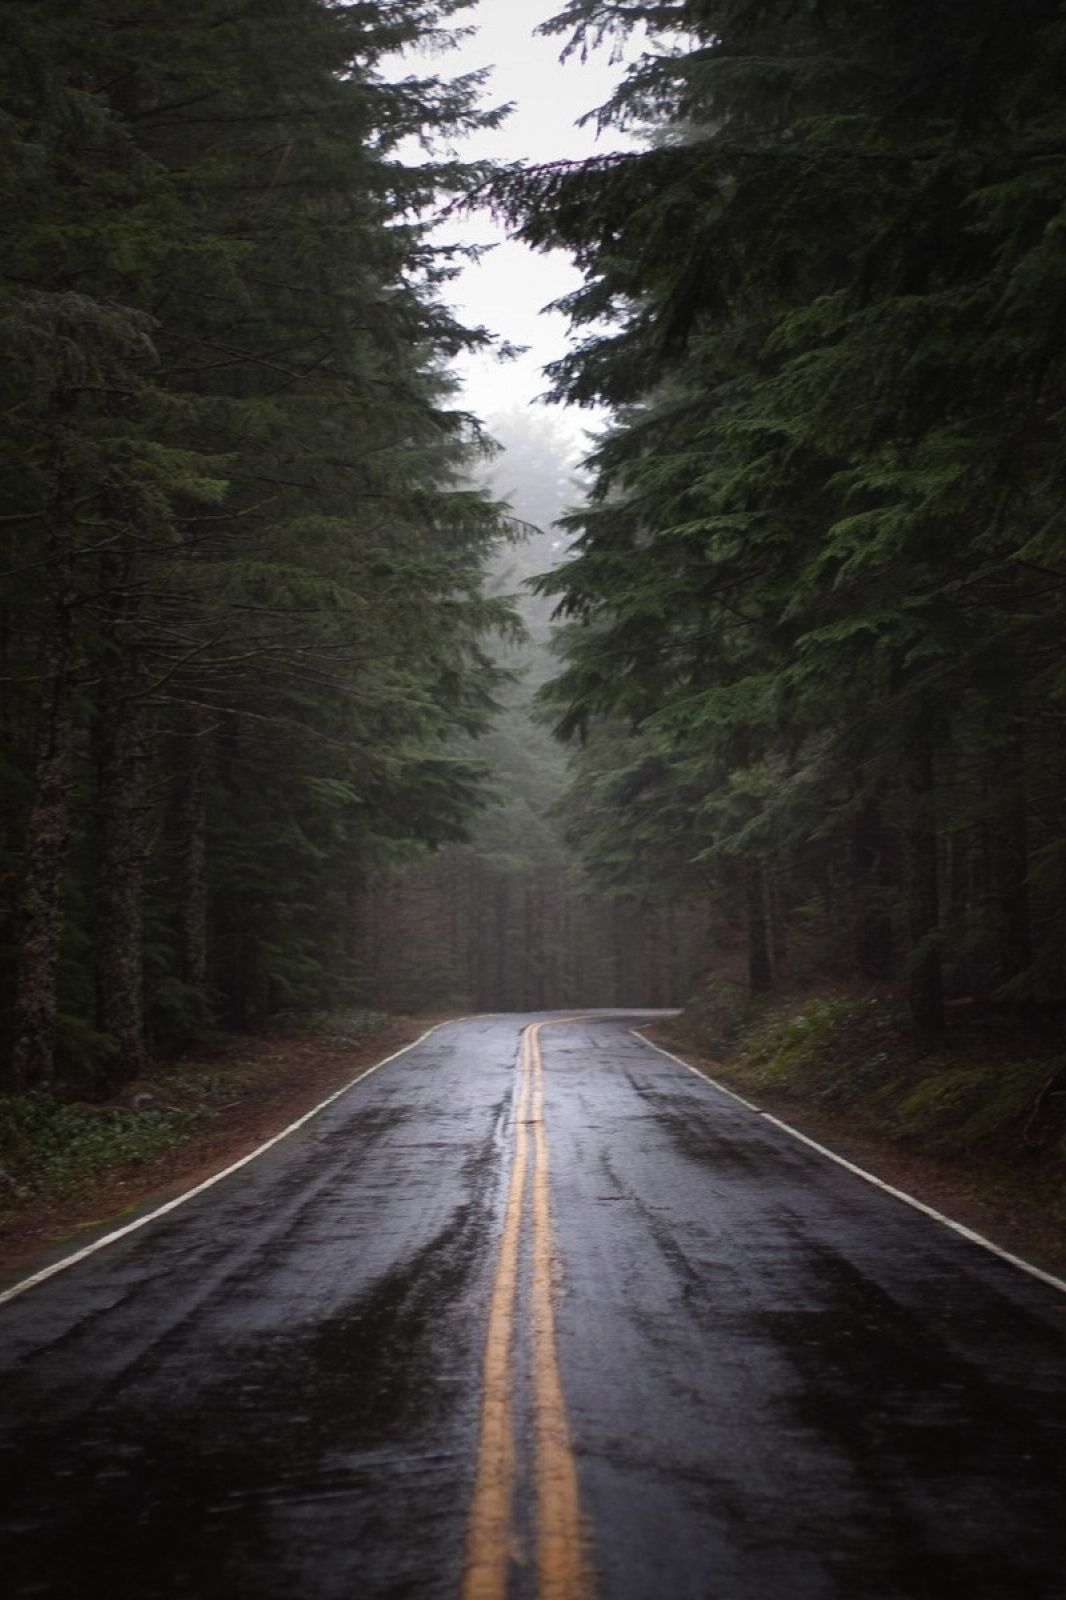 Thinking about: autumn road trips and cool mountain air - Hither & Thither